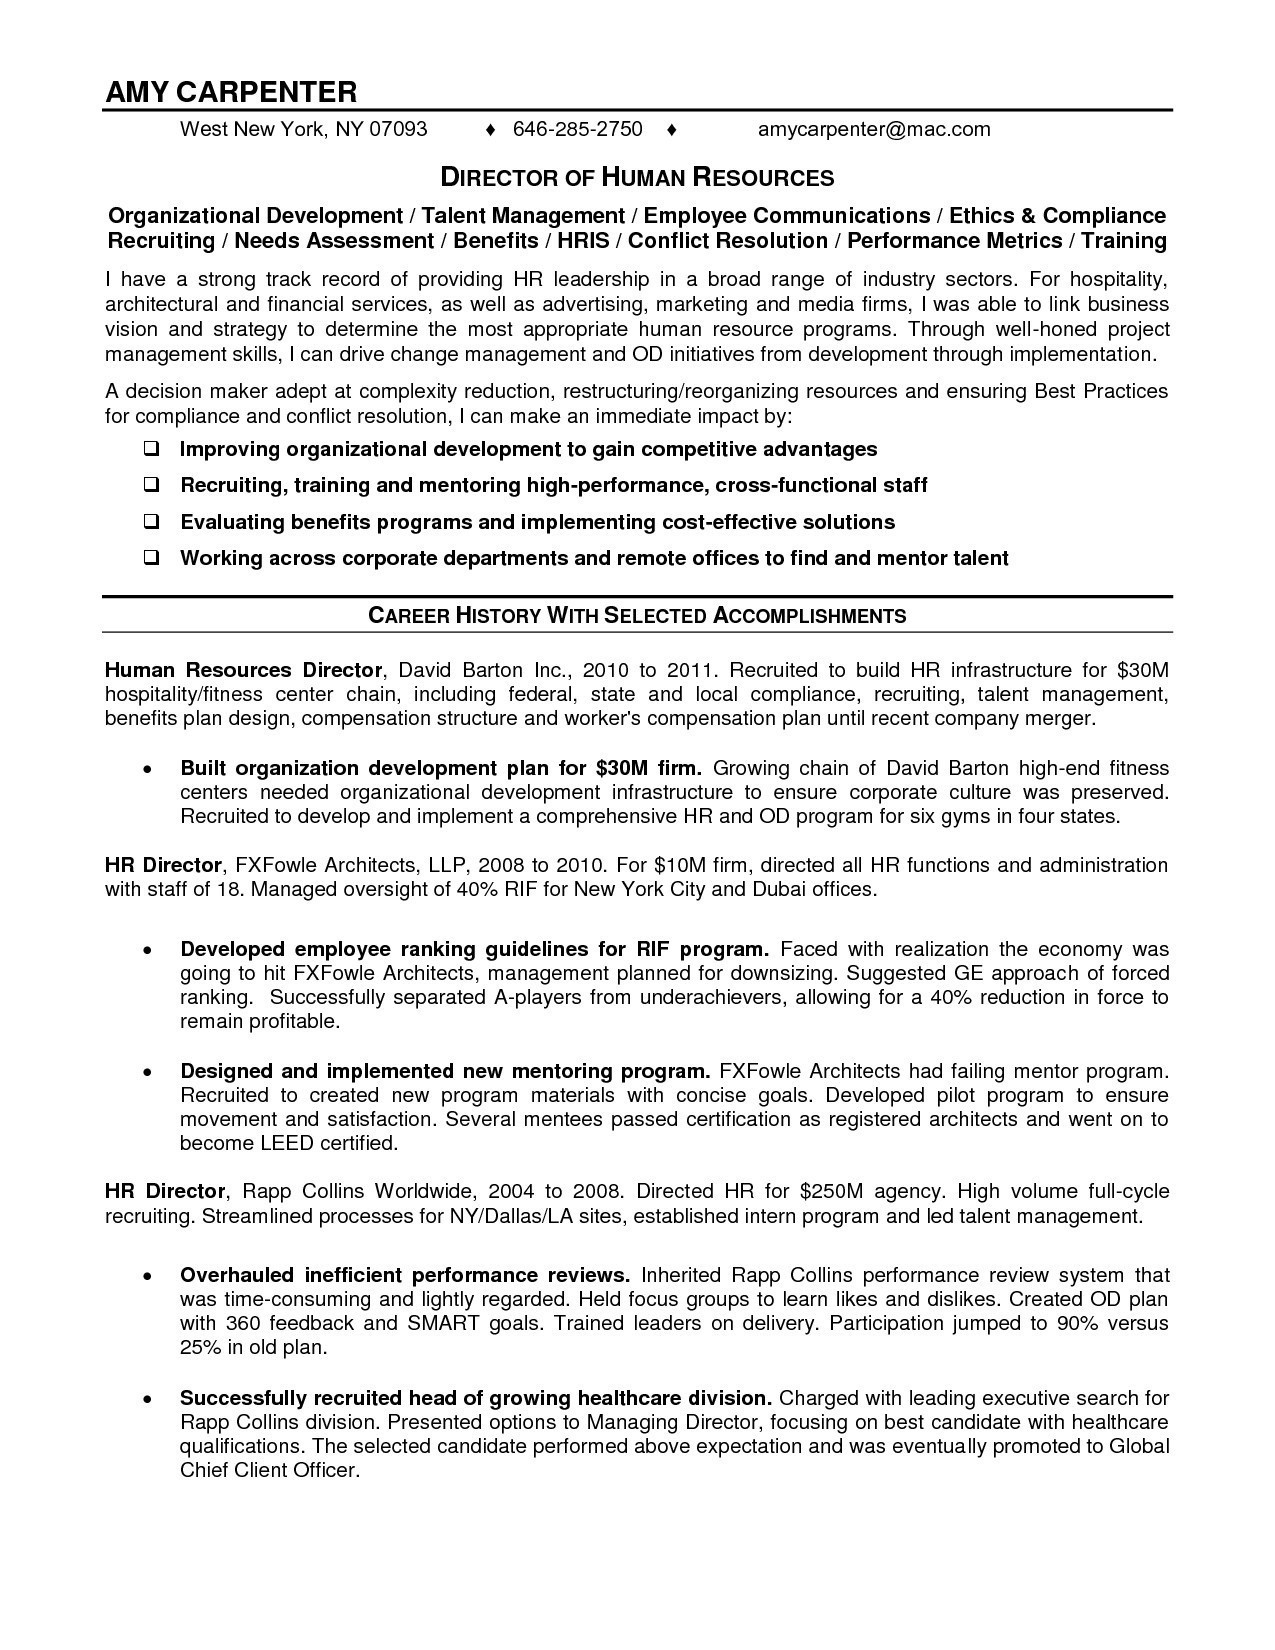 Mergers and Inquisitions Resume Template - How to Structure A Resume New Unique Resume Tutor Luxury Writing